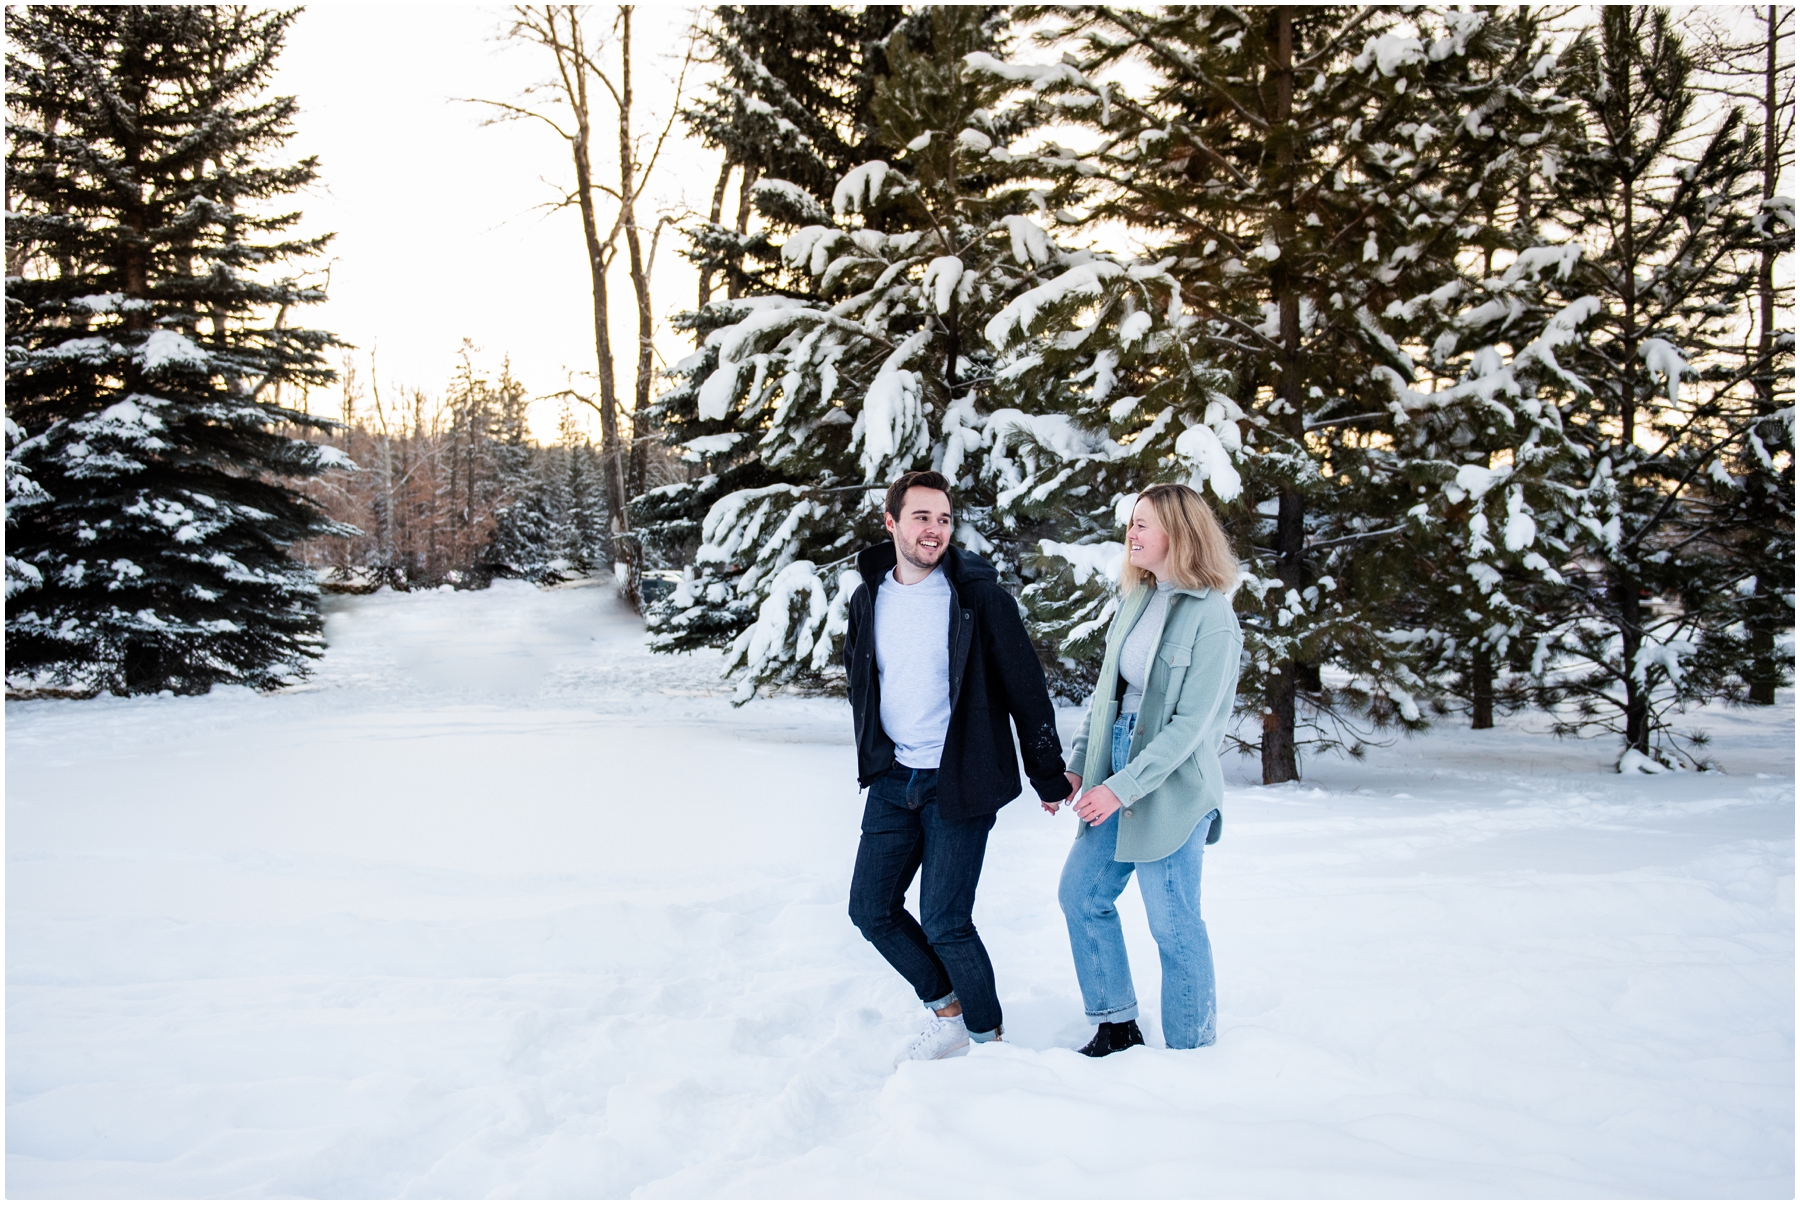 Calgary Bowness Park Skating Engagement Photographer